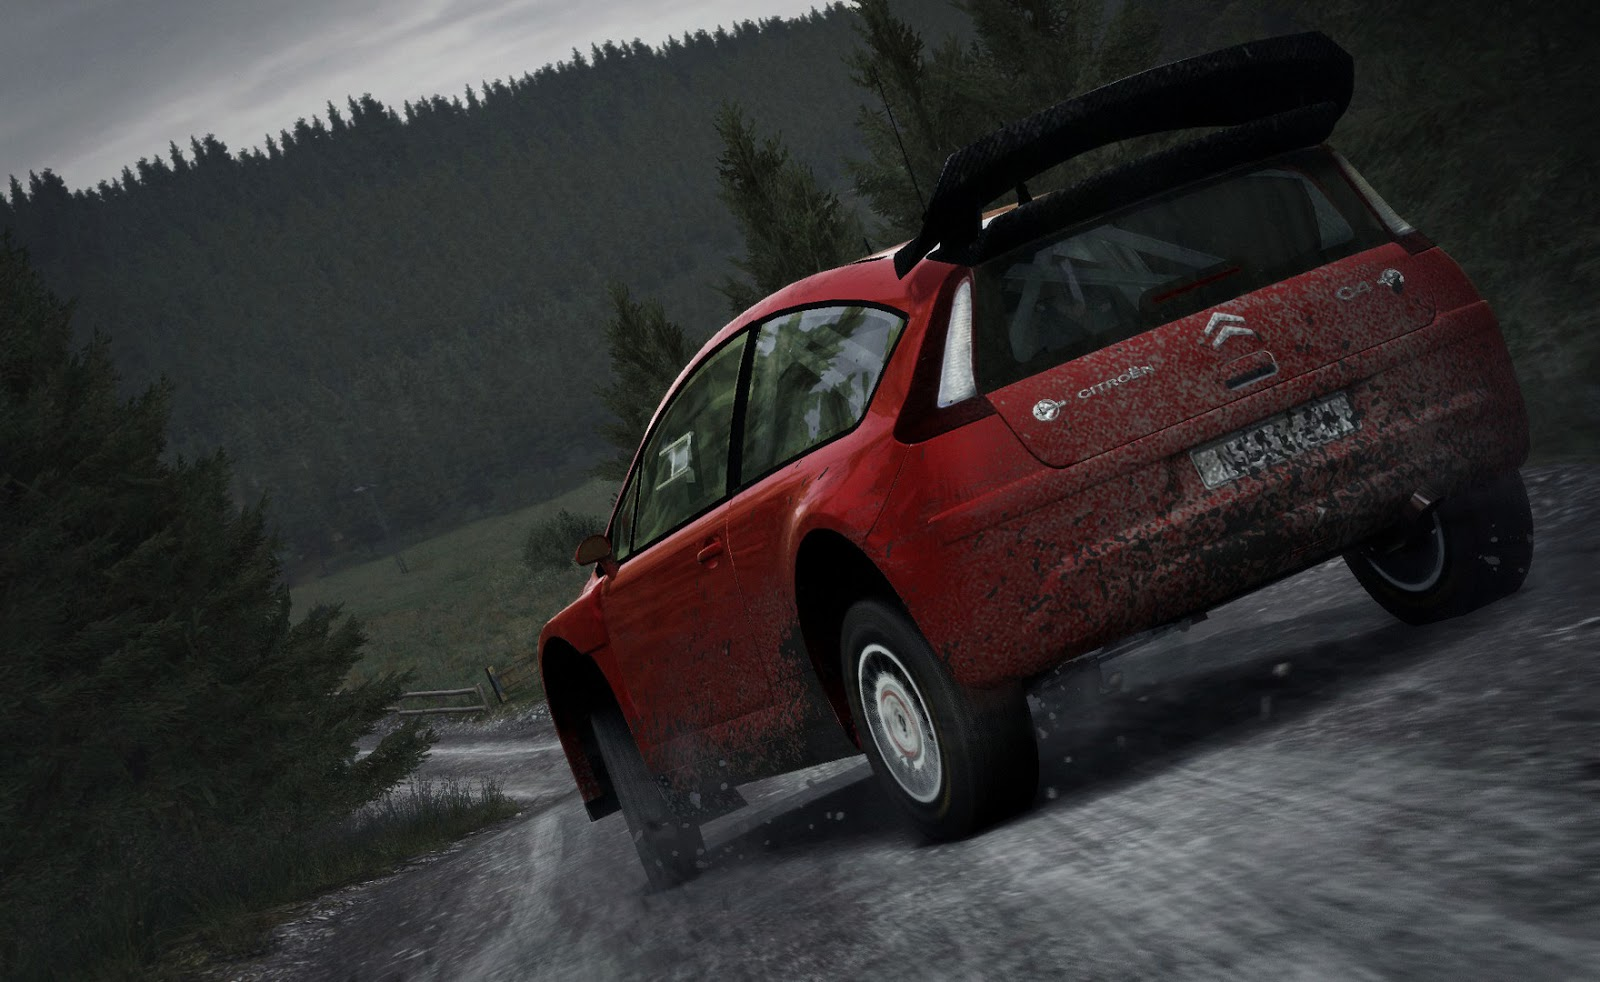 DiRT Rally ESPAÑOL PC Descargar Full (PROPHET) + REPACK 4 DVD5 (JPW) 5